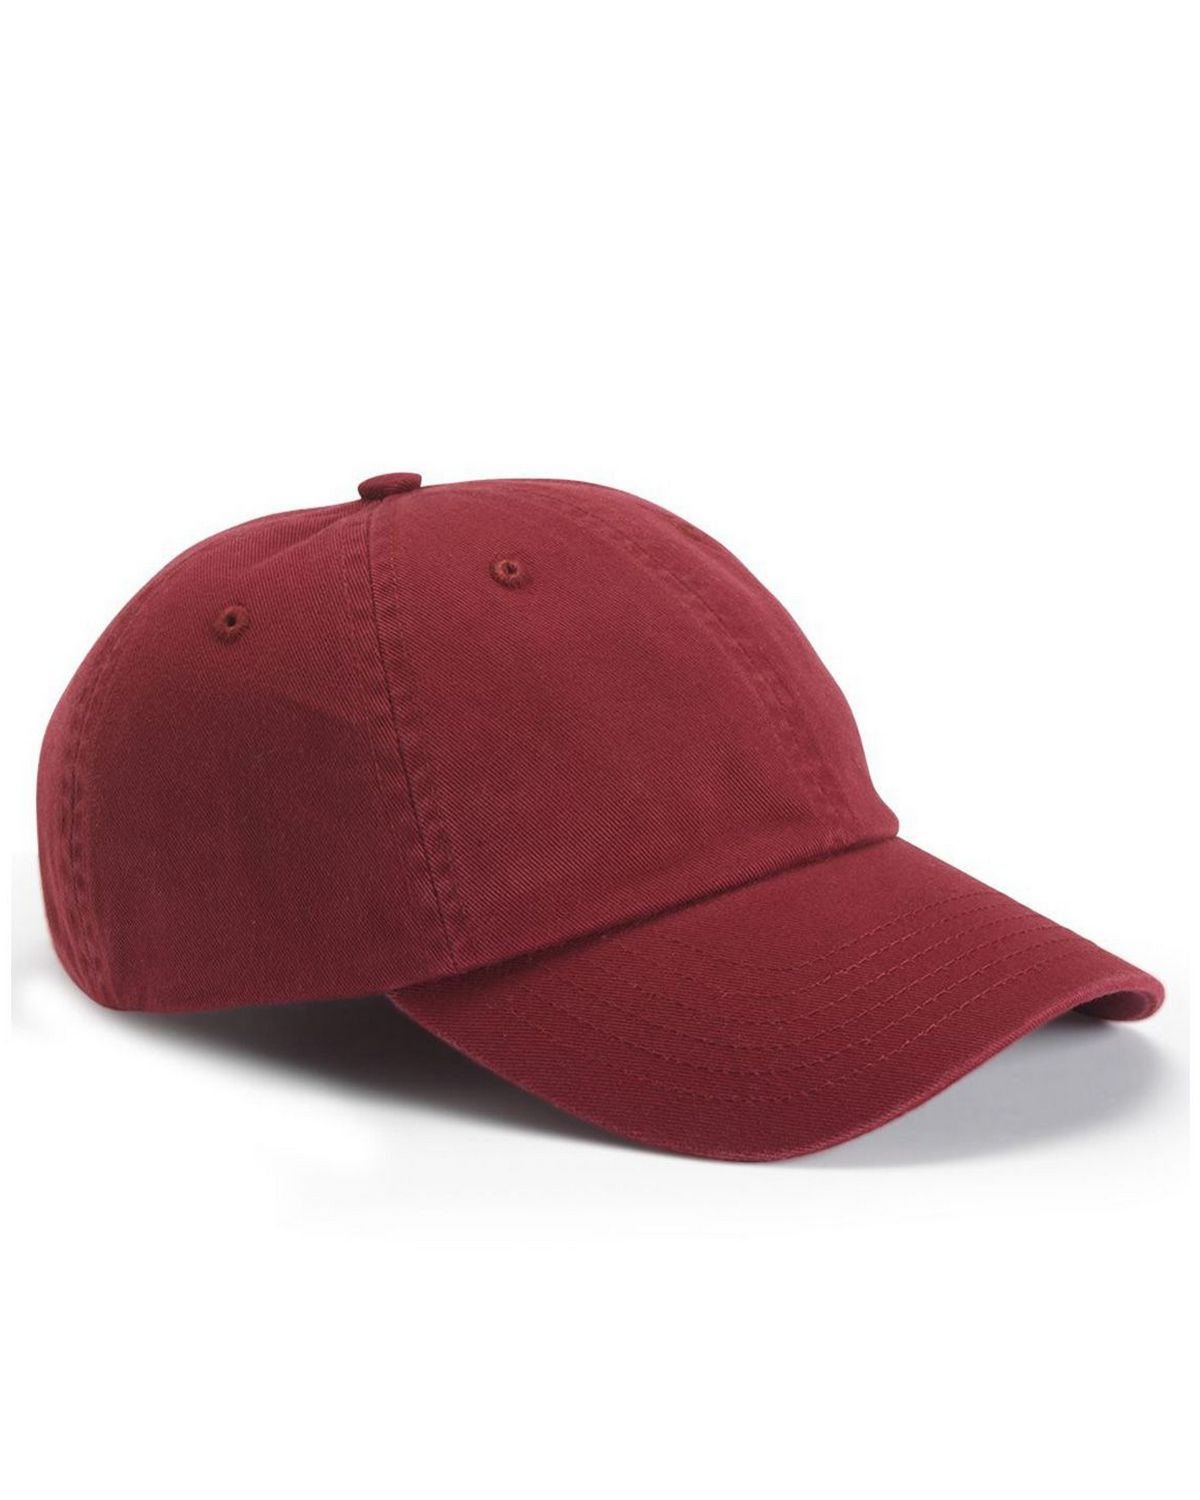 74e80d34821 Reviews about Valucap VC300A Classic Dads Cap